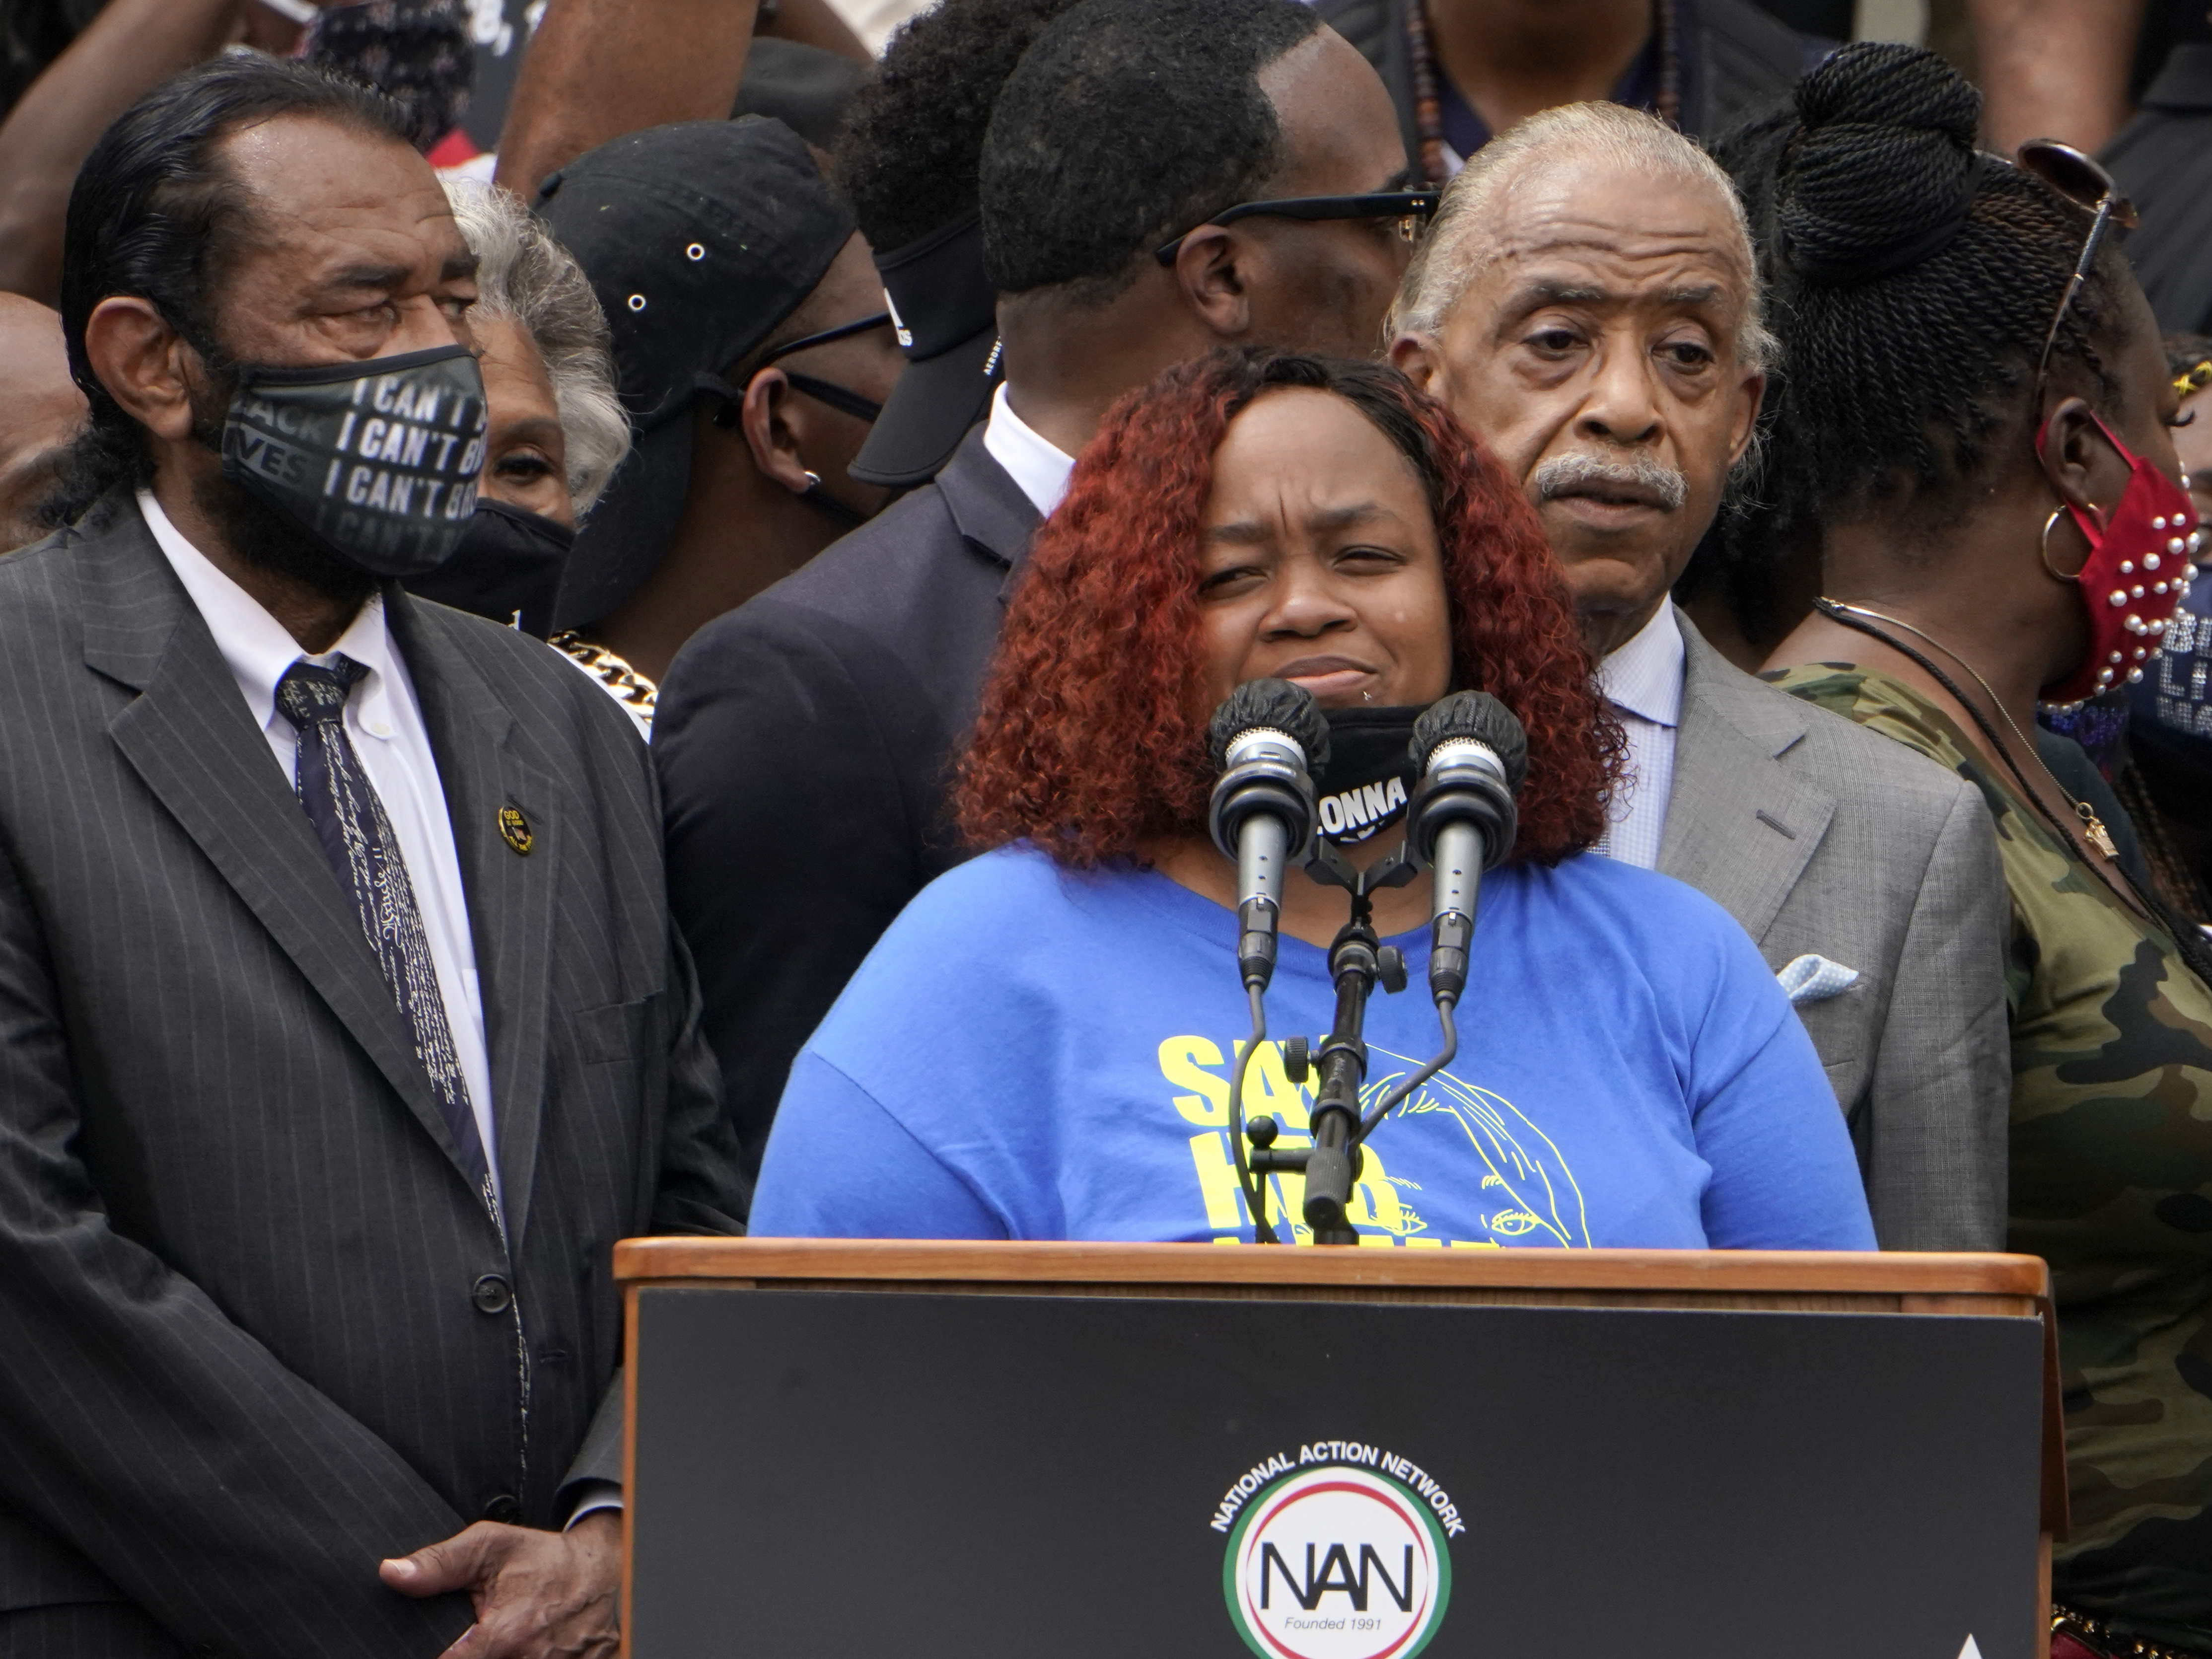 Tamika Palmer Breonna Taylor S Mother Wants Charges Brought Against Officers Live Updates Protests For Racial Justice Npr